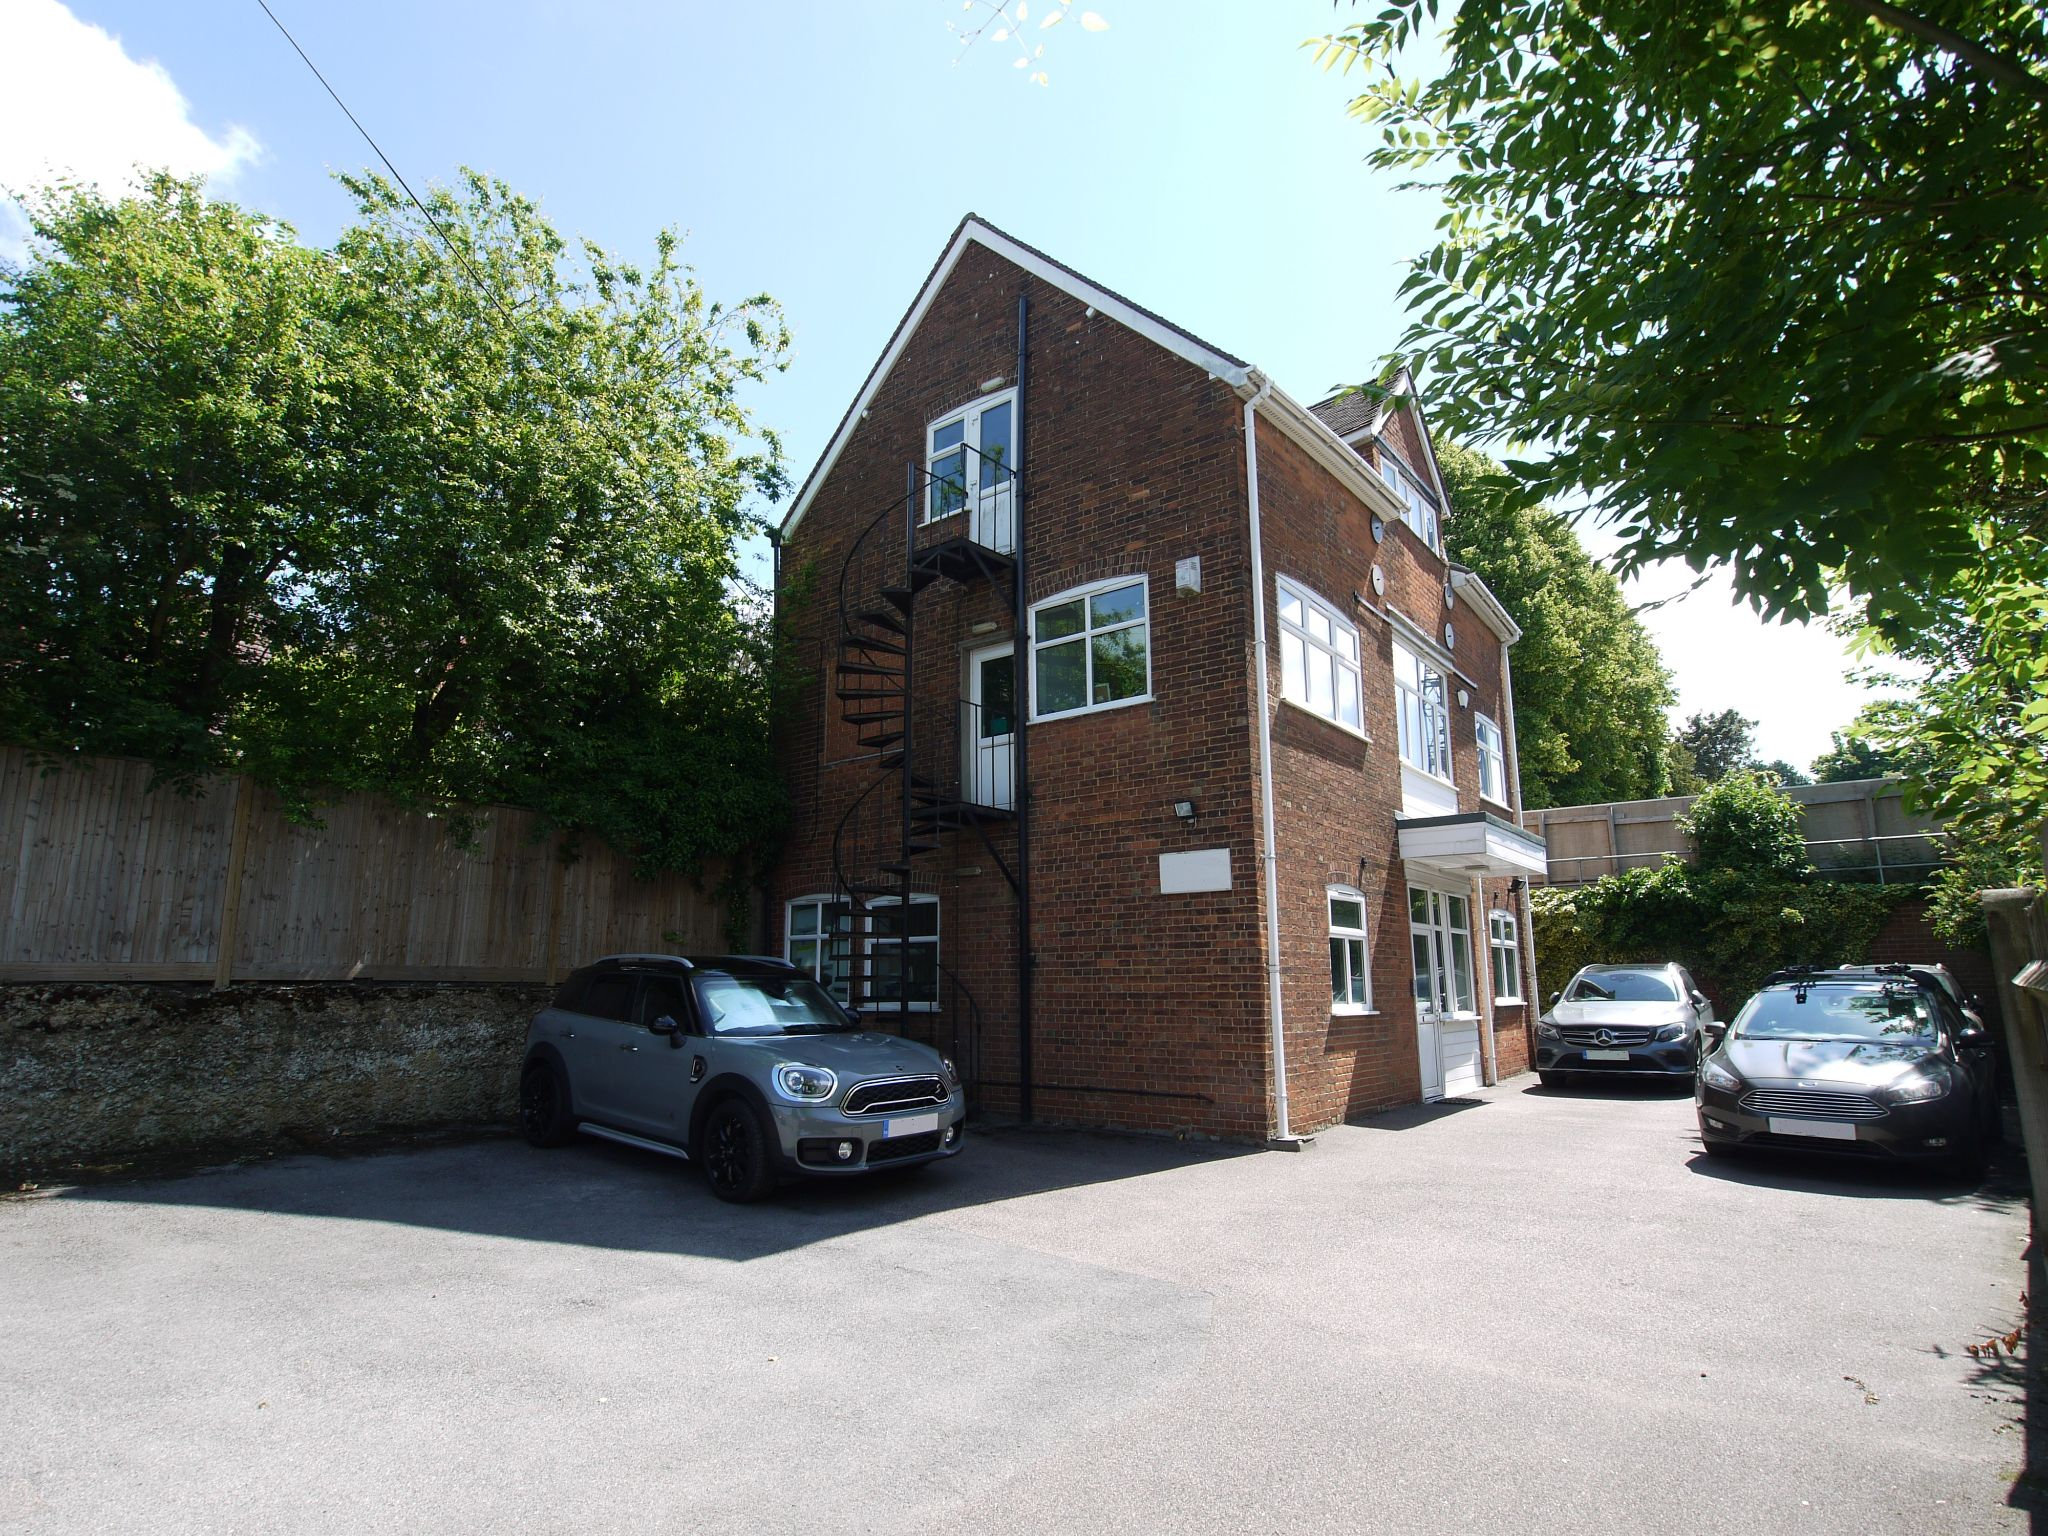 0 bedroom plot land To Let in Sevenoaks - Photograph 1